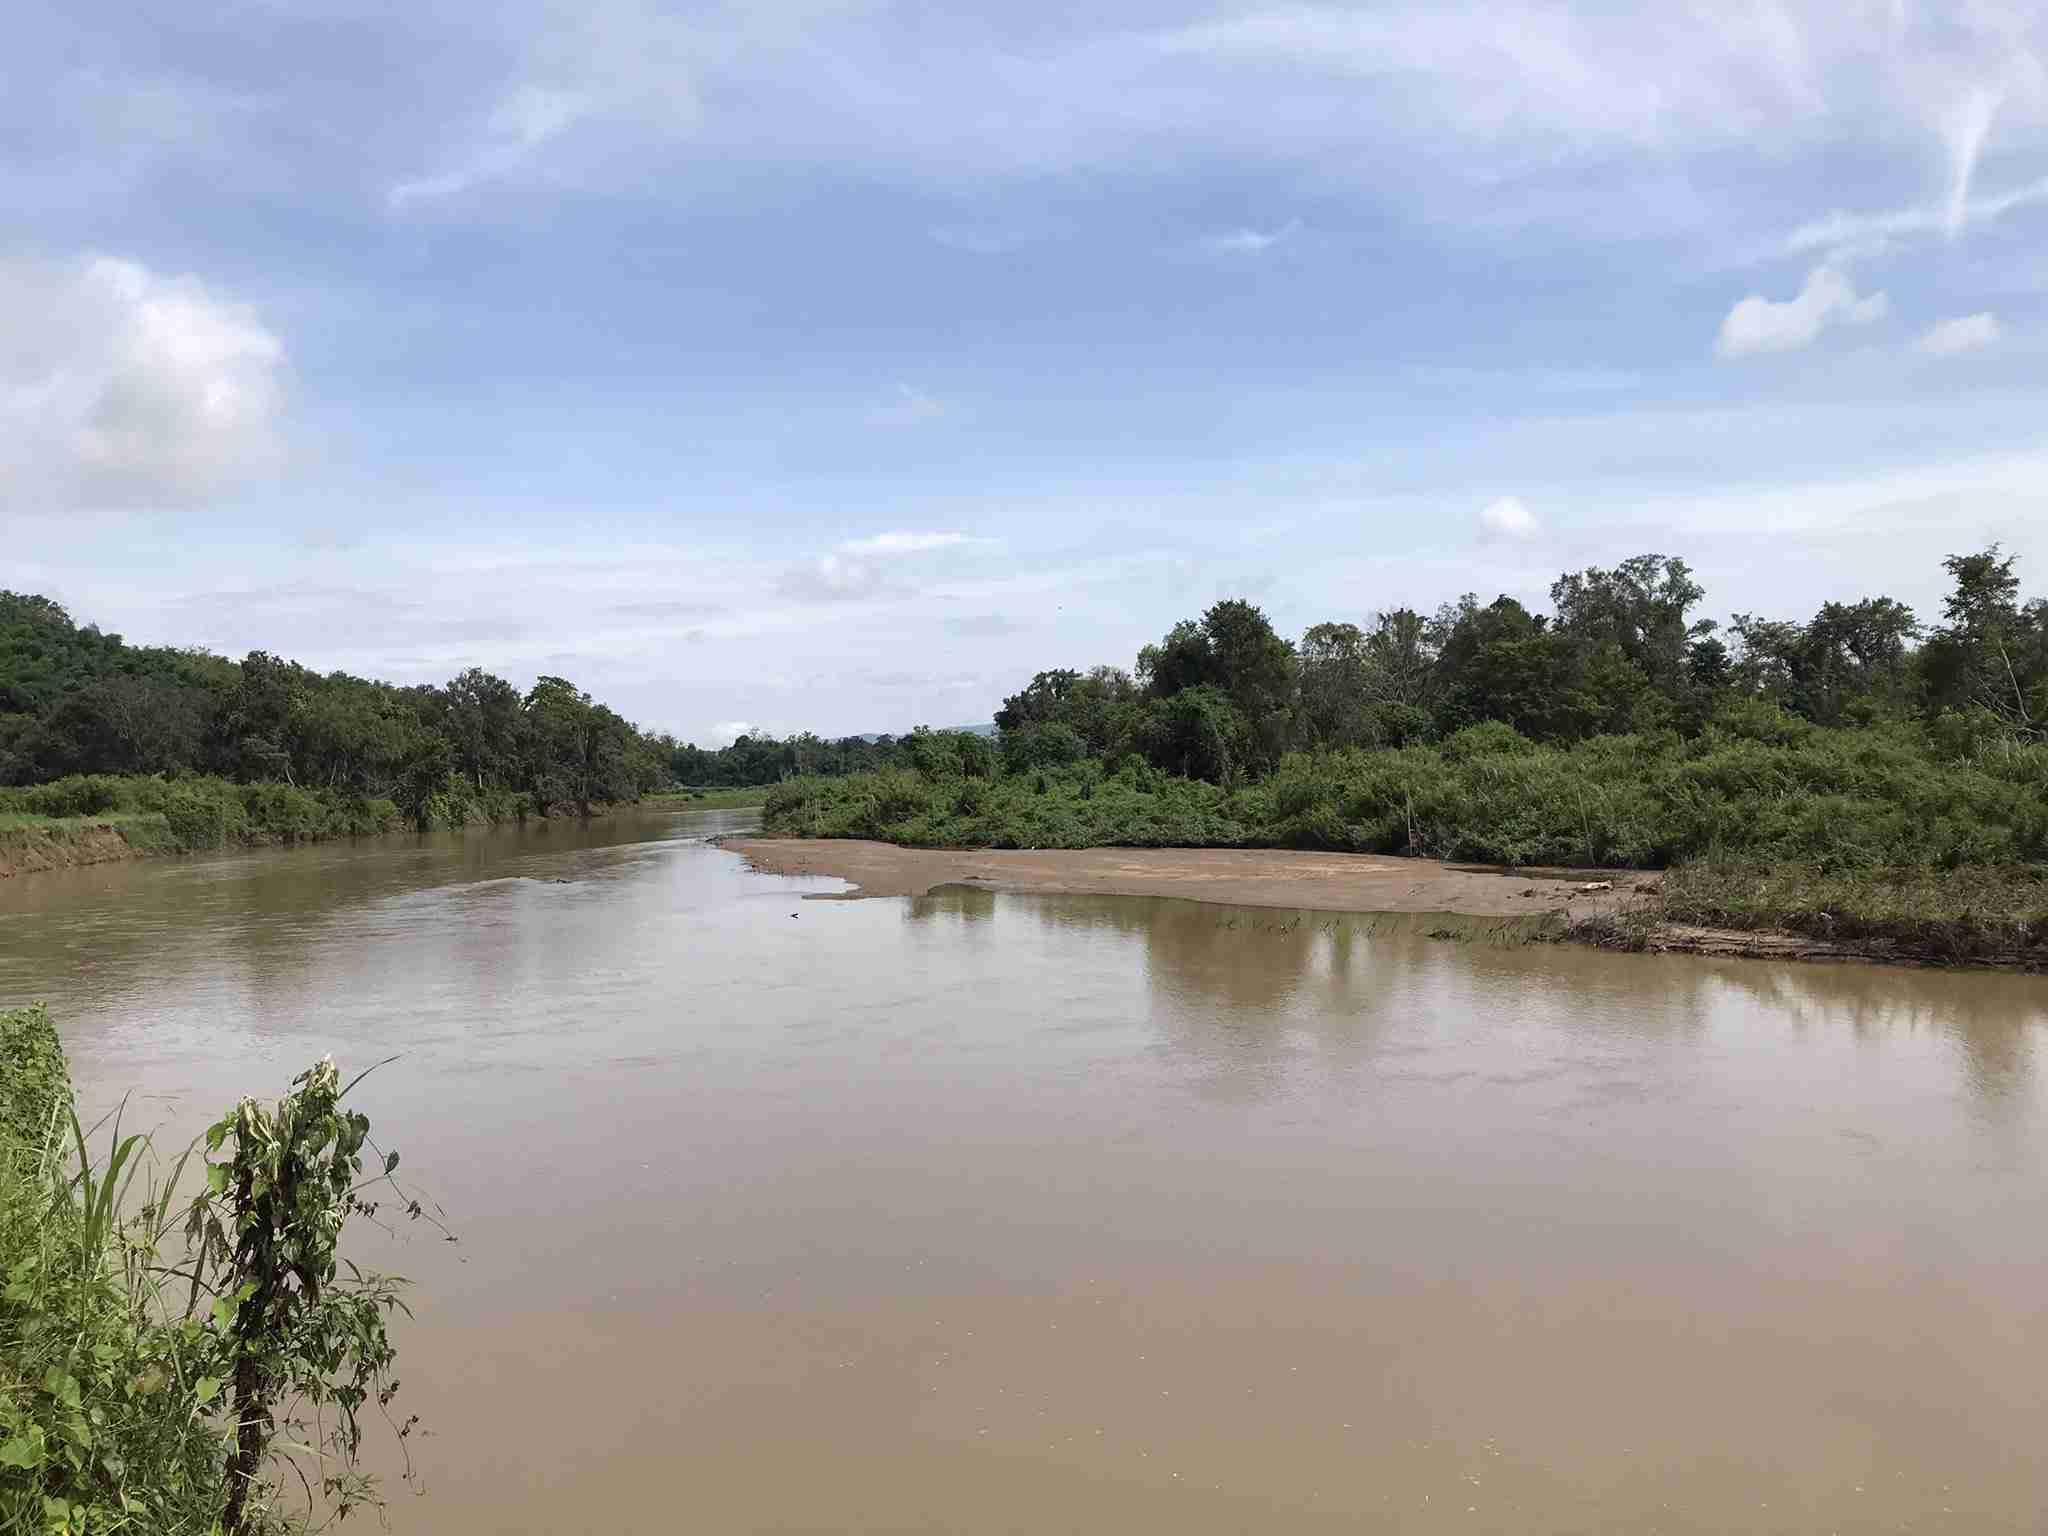 A photograph taken on 15 July 2021 of the Ruak River. Sandbanks that are normally visible only during the dry season are visible here, in the wet season. Unnatural changes to water levels have huge implications for Thailand's riverine wildlife. (Image: John Roberts)